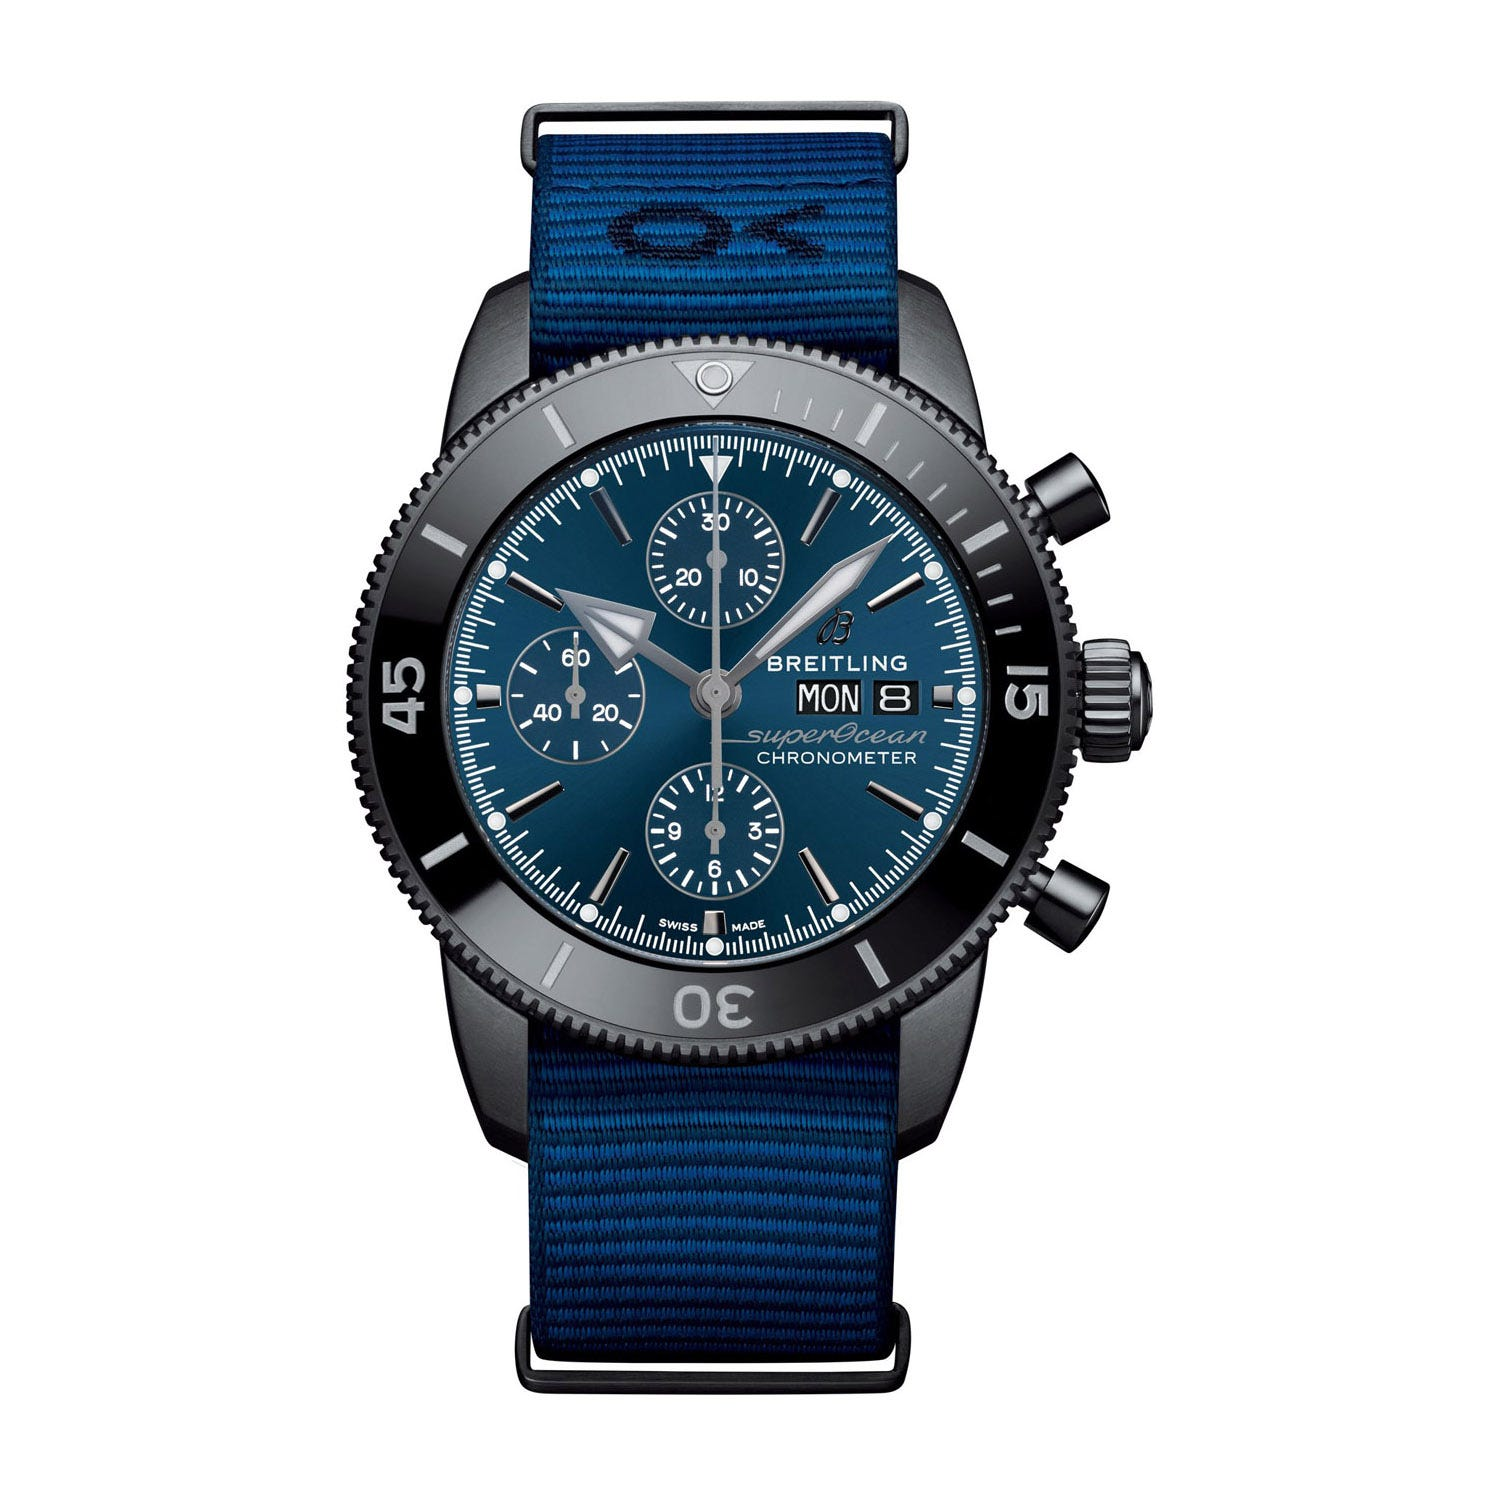 Breitling Superocean Outerknown NATO Strap 44mm Men's Watch